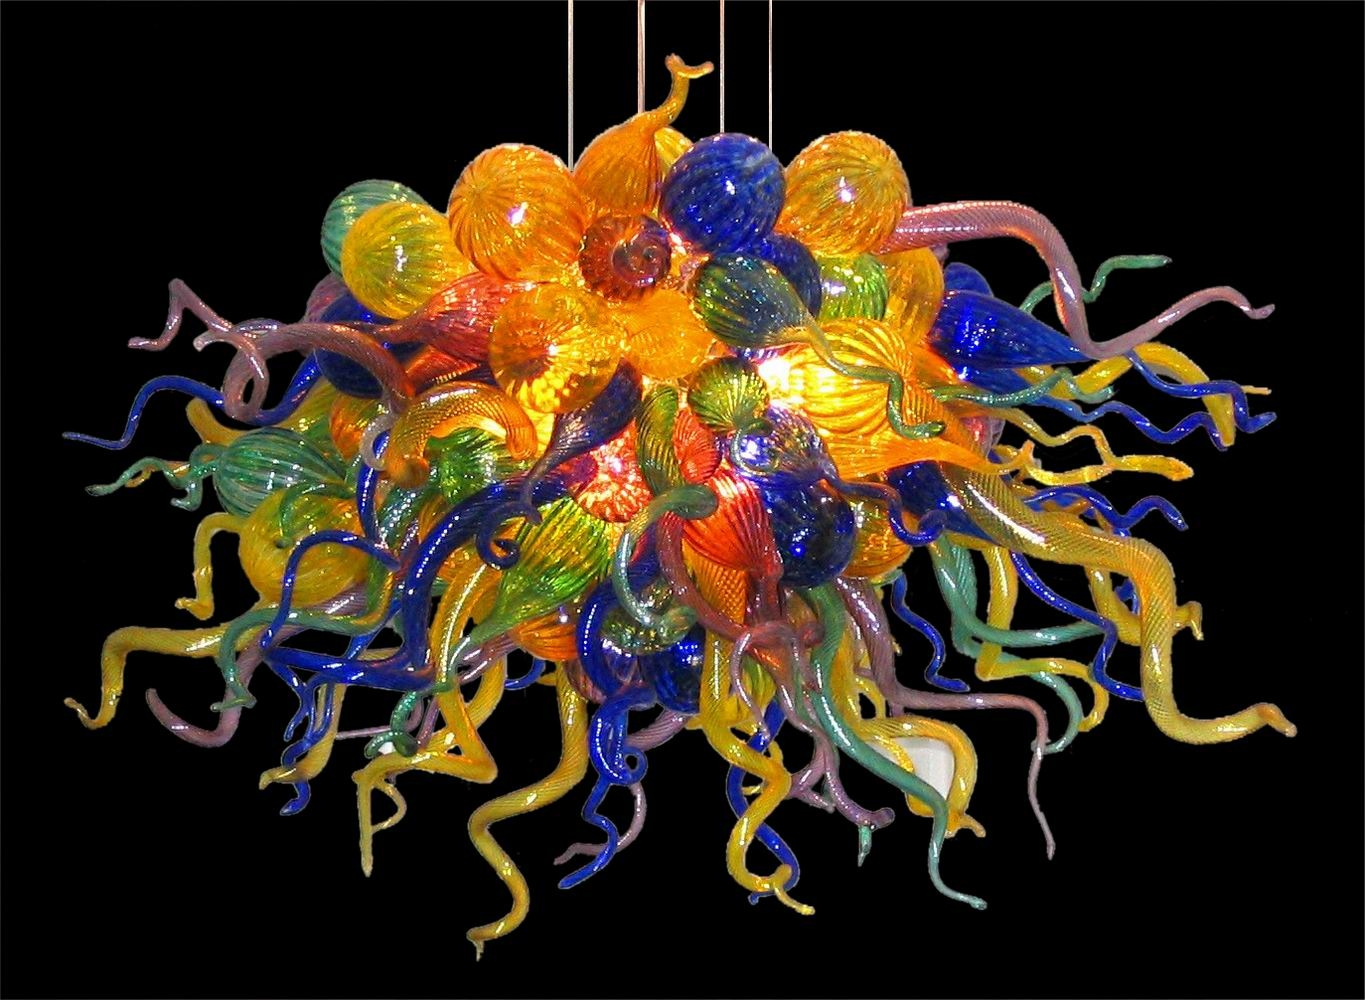 Chandelier Stunning Colored Chandelier Fascinating Colored Regarding Gypsy Chandeliers (Image 14 of 25)